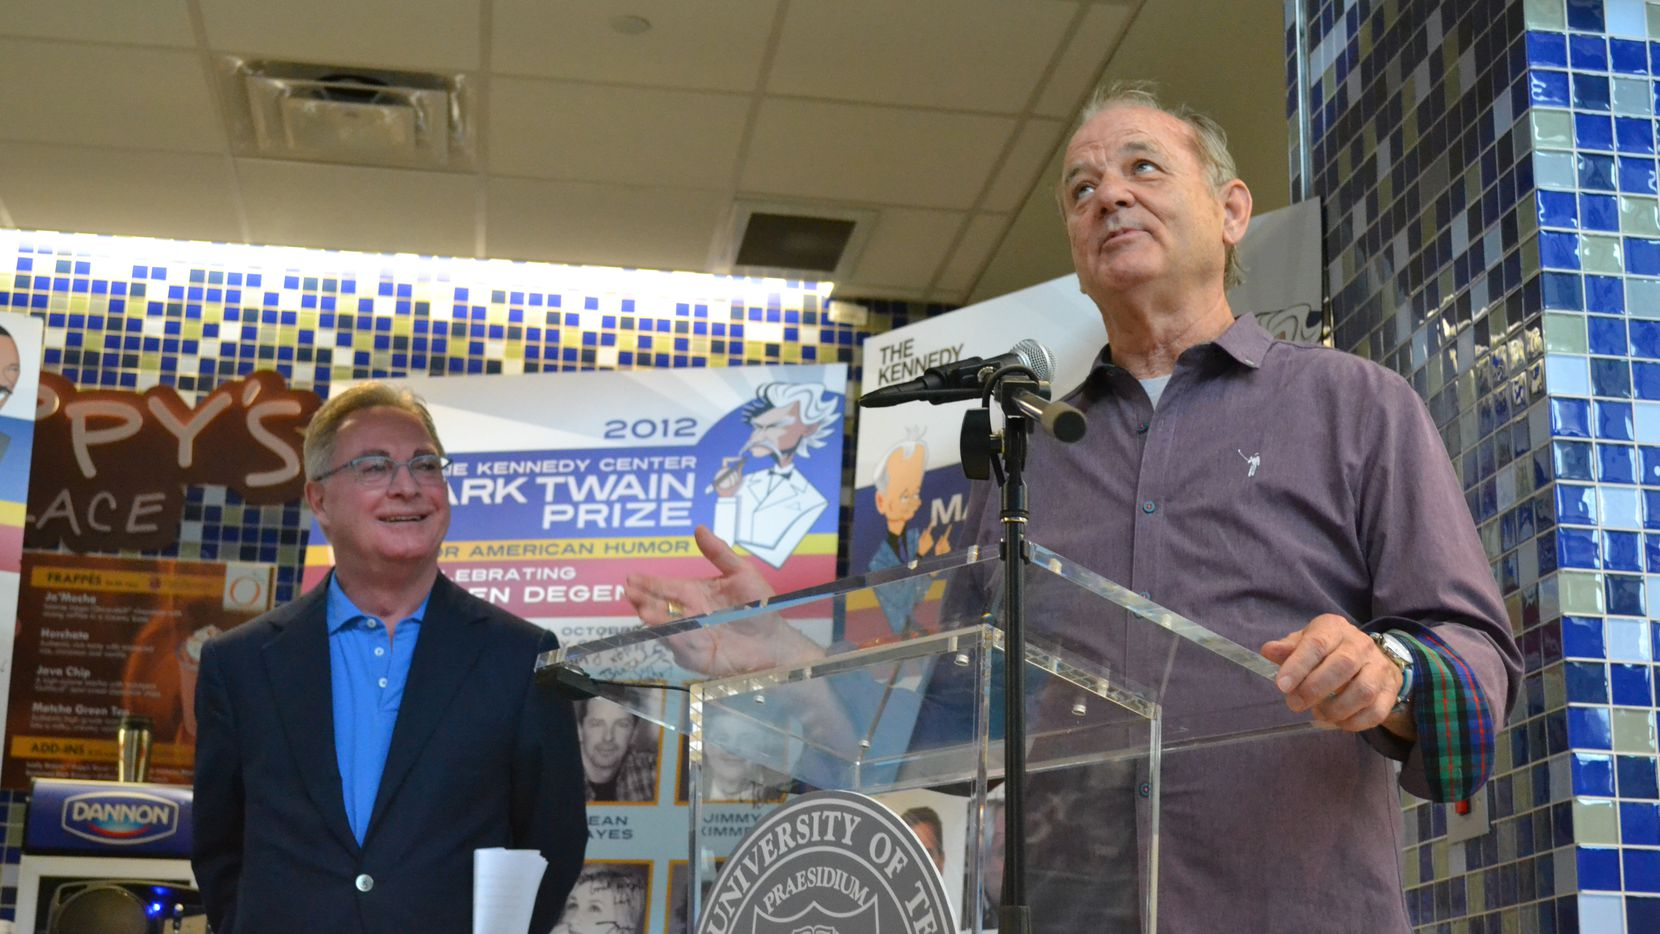 Cappy McGarr listened as the comic Bill Murray spoke Saturday at an Austin  ceremony where McGarr donated six posters done for the Kennedy Center Mark Twain Prize for American Humor. The posters, each autographed by multiple comedians, will reside at the University of Texas' Harry Ransom Center.